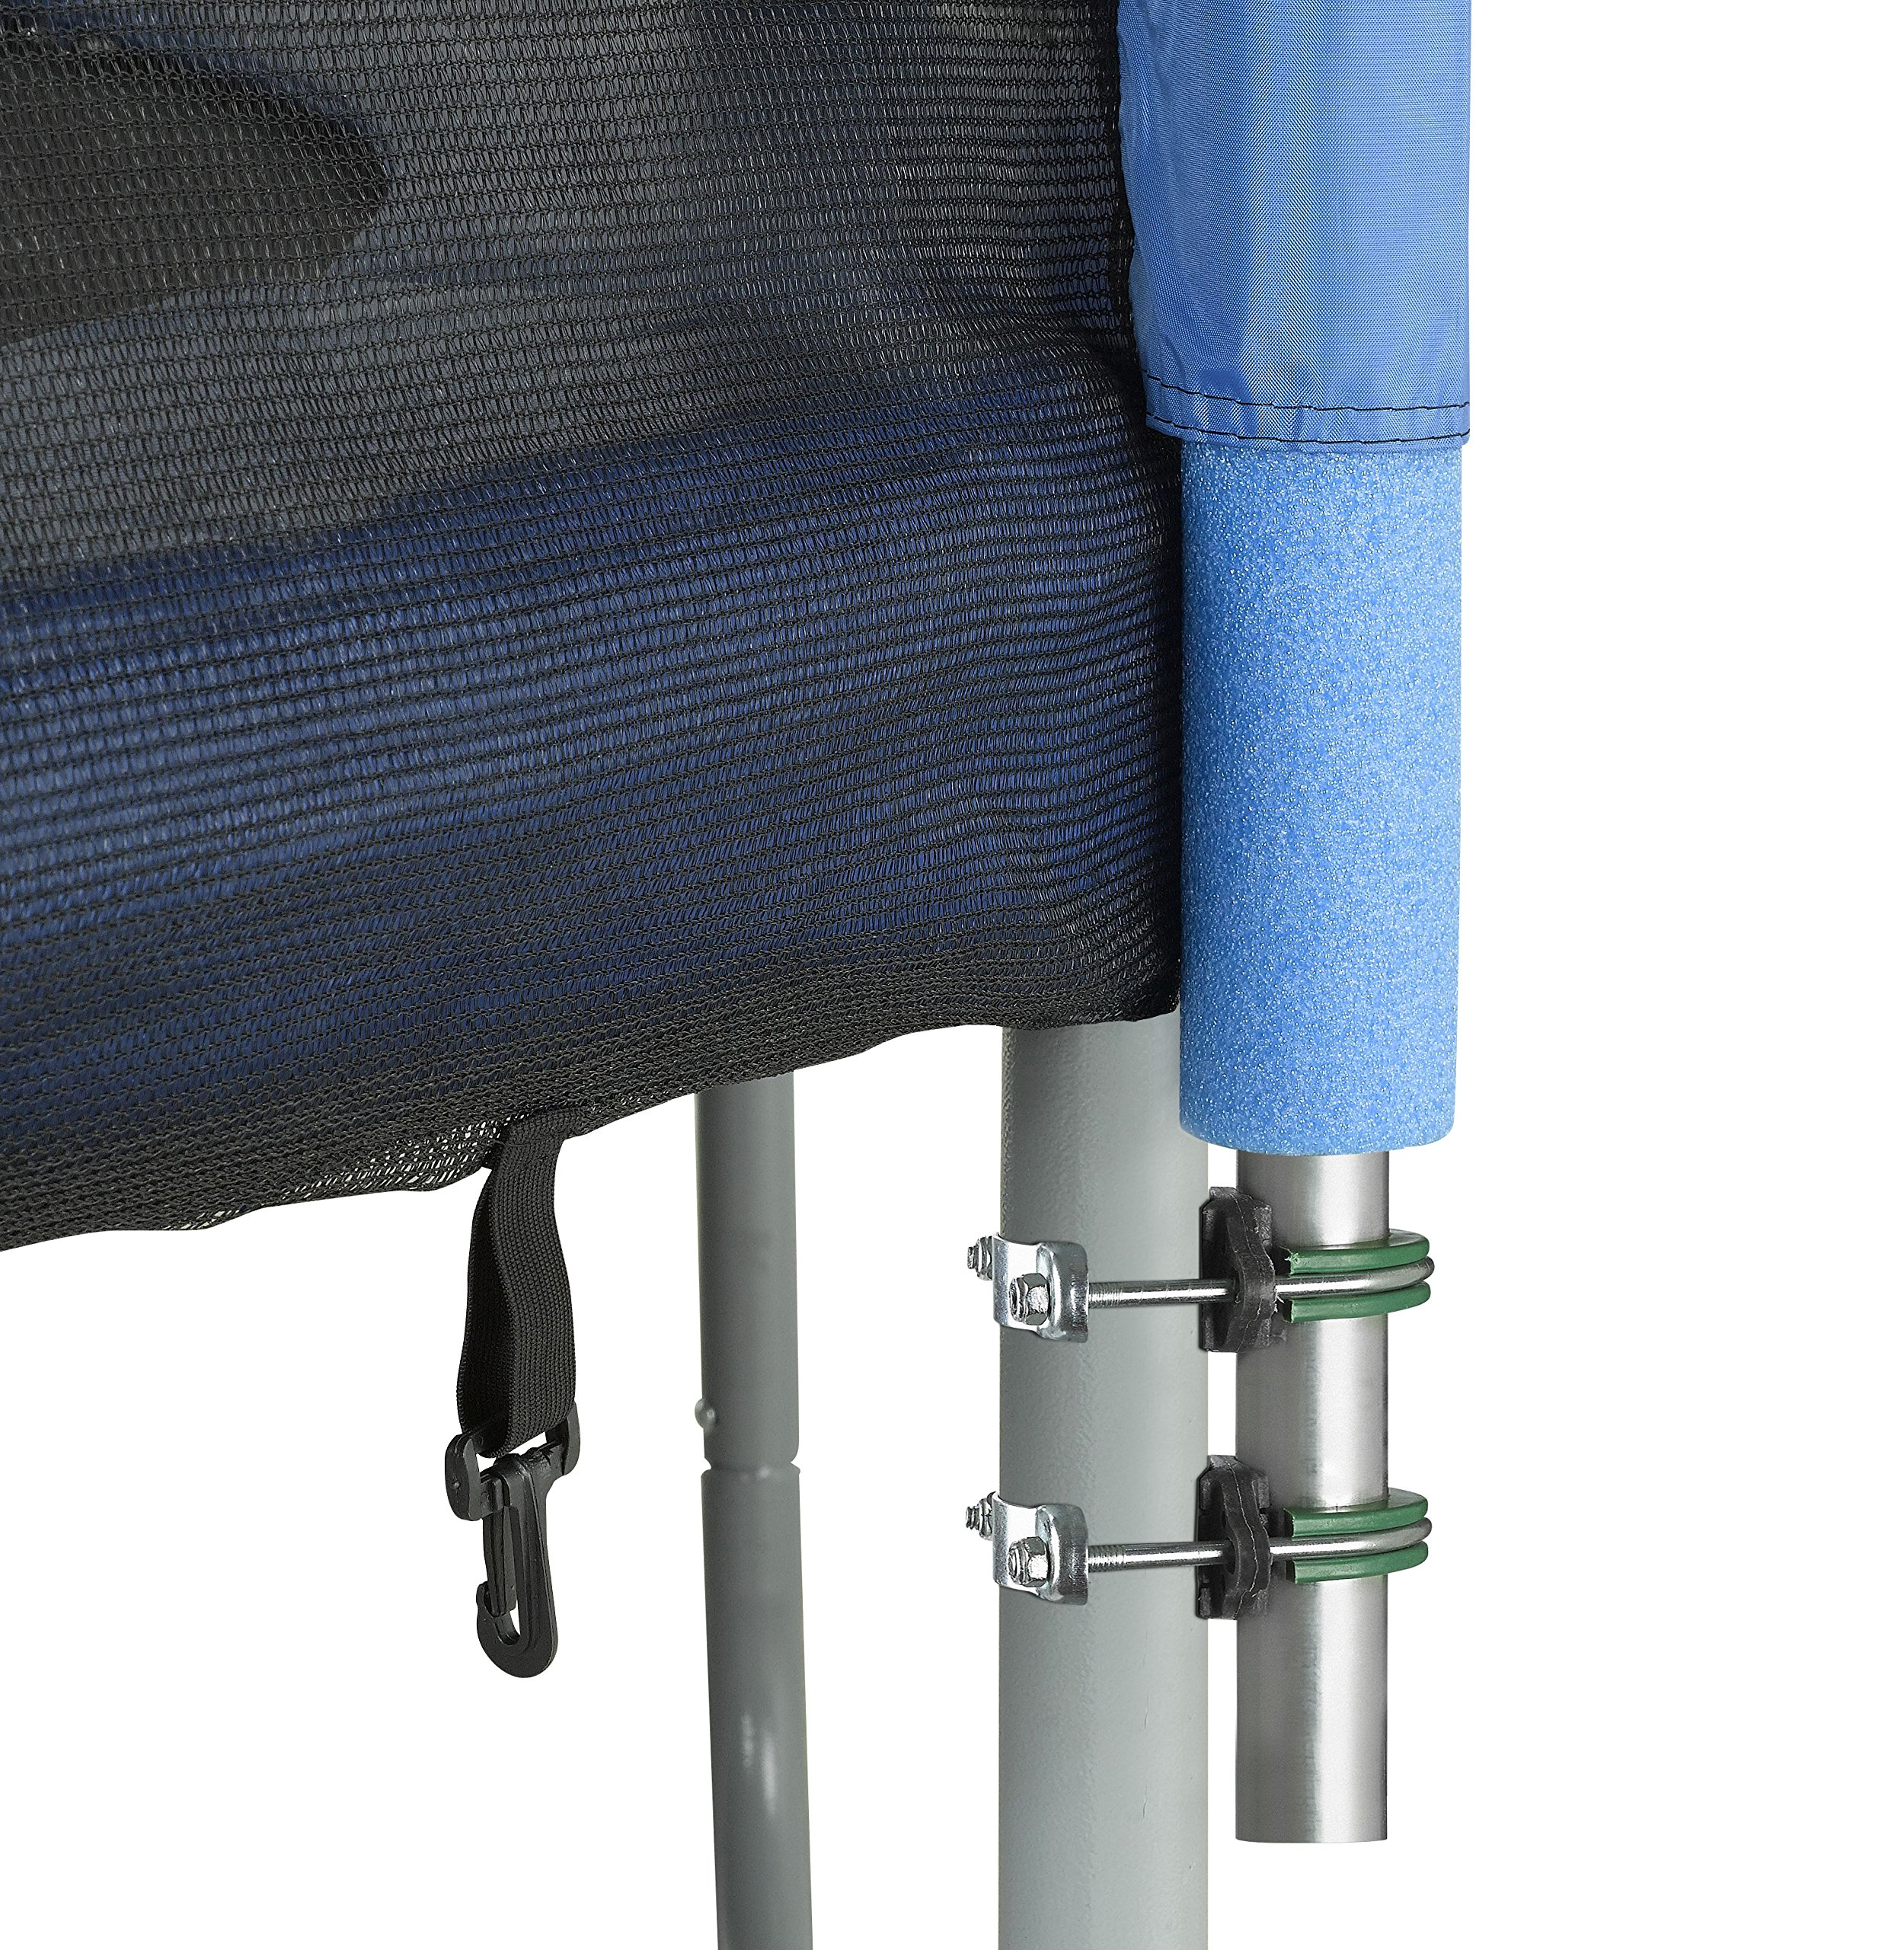 Upper Bounce 8 Pole Trampoline Enclosure Set to fit 15 FT. Trampoline Frames with Set of 4 or 8 W-Shaped Legs (Trampoline Not Included) by Upper Bounce (Image #5)